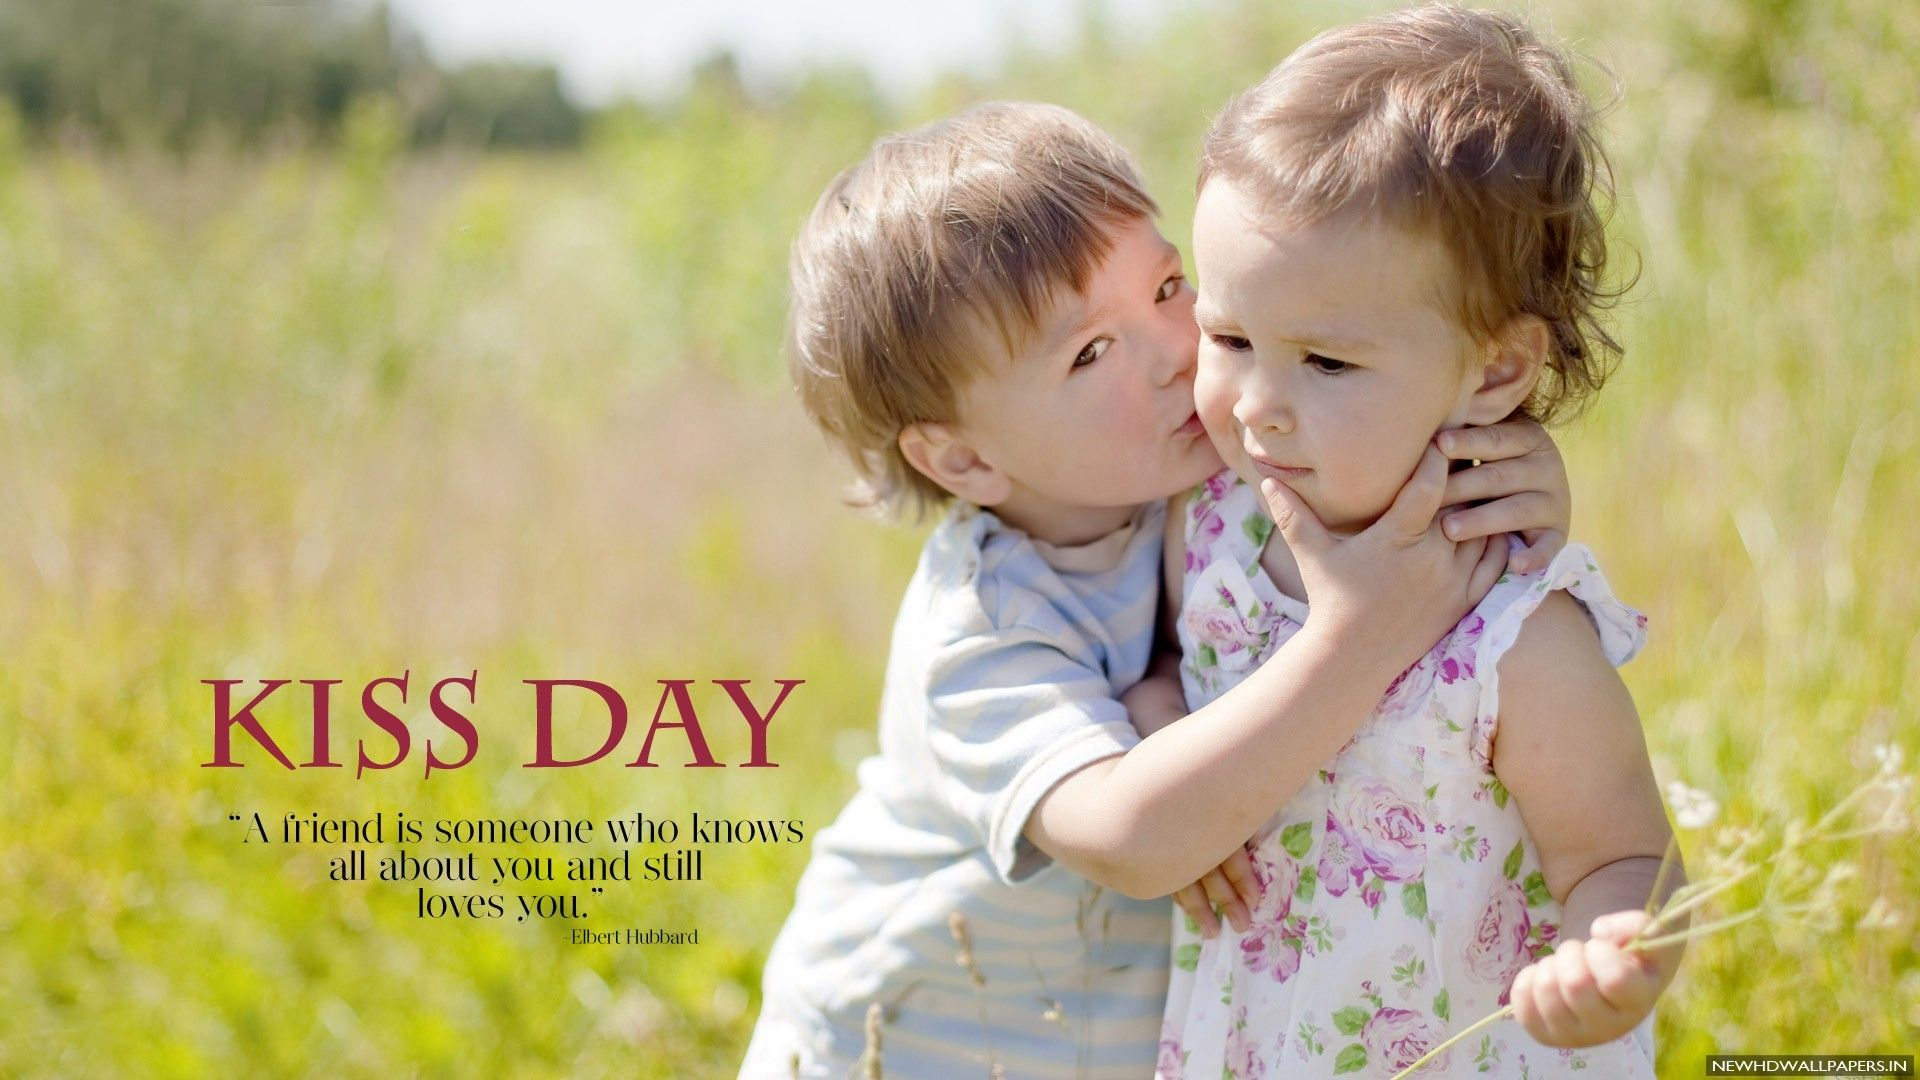 Cute Boy Kissing Baby Girl Photo 2015 New Hd Wallpapers Babies